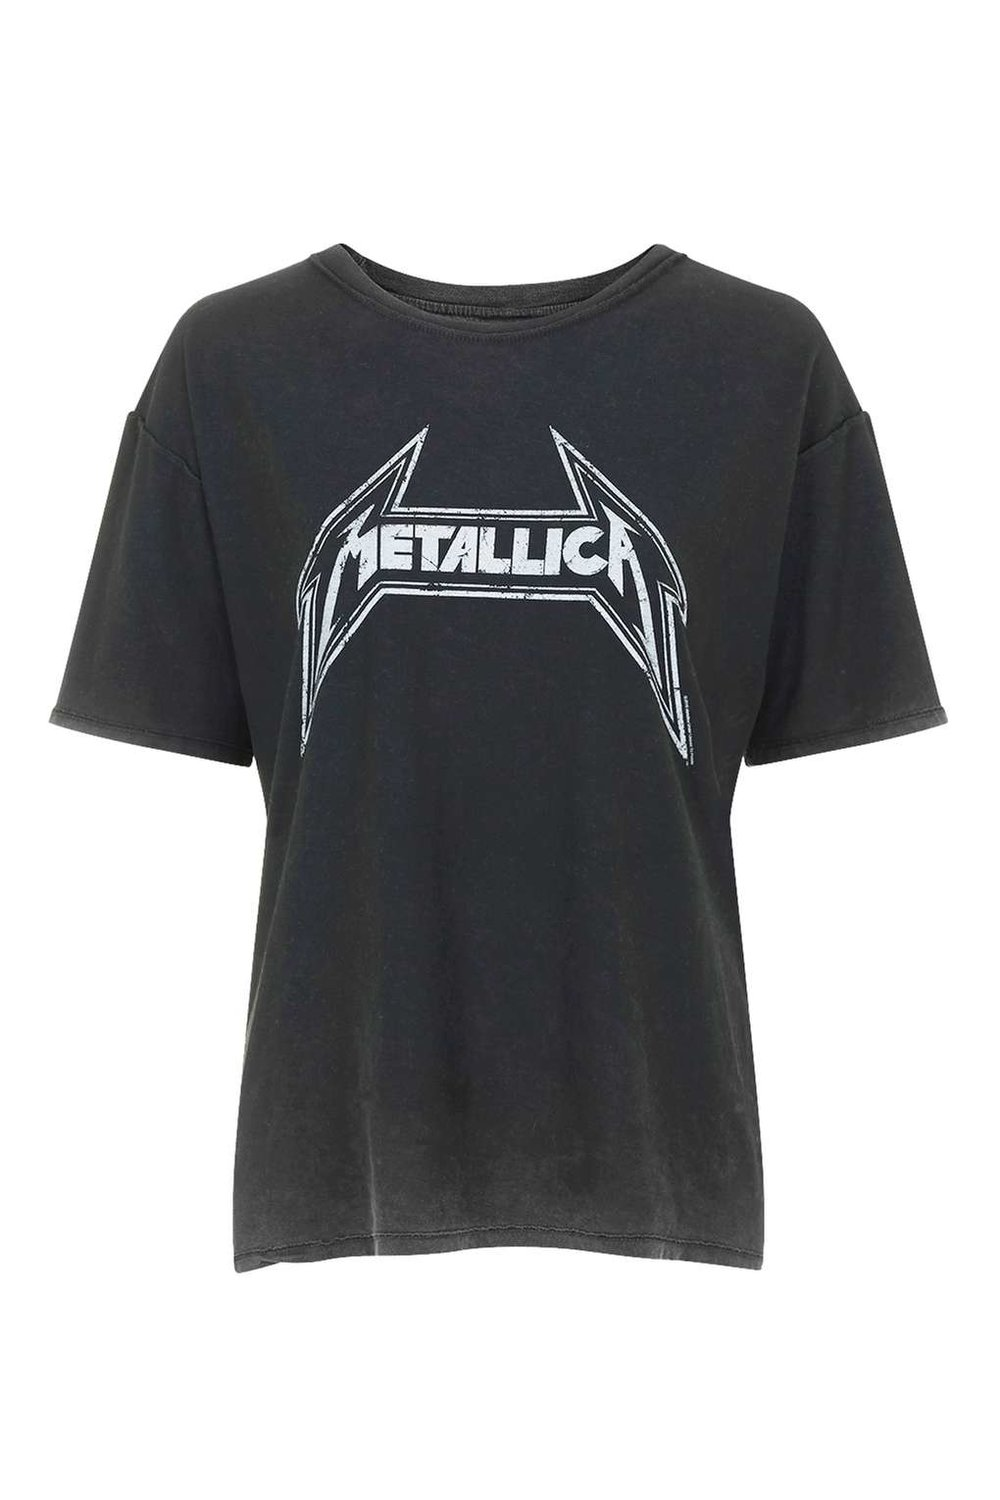 Metallica Tee by And Finally @ Topshop £25